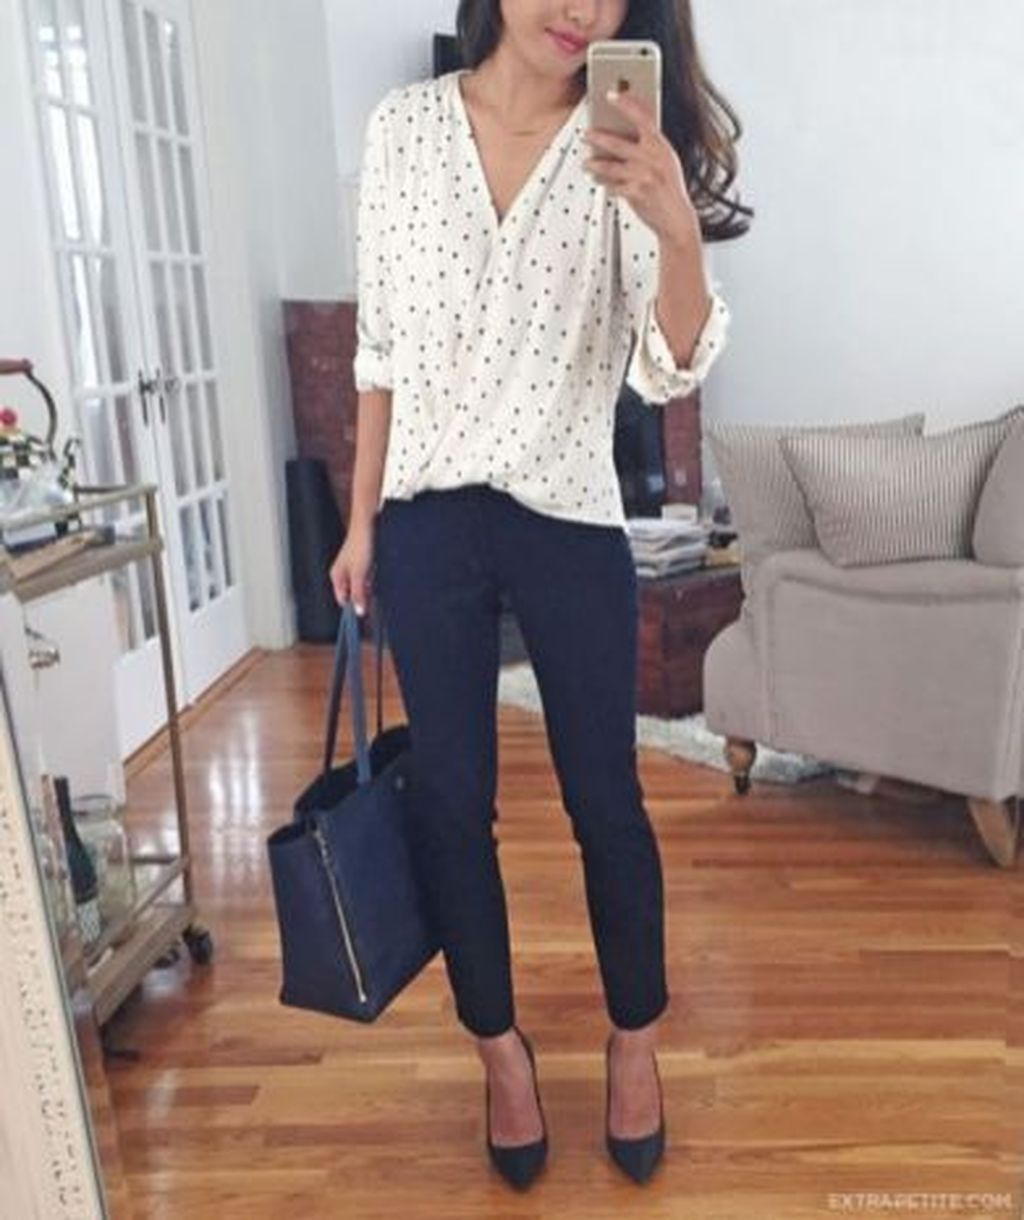 6566f9e745e cool 50 Fabulous Summer Work Outfit Ideas In 2019 https   www.addicfashion